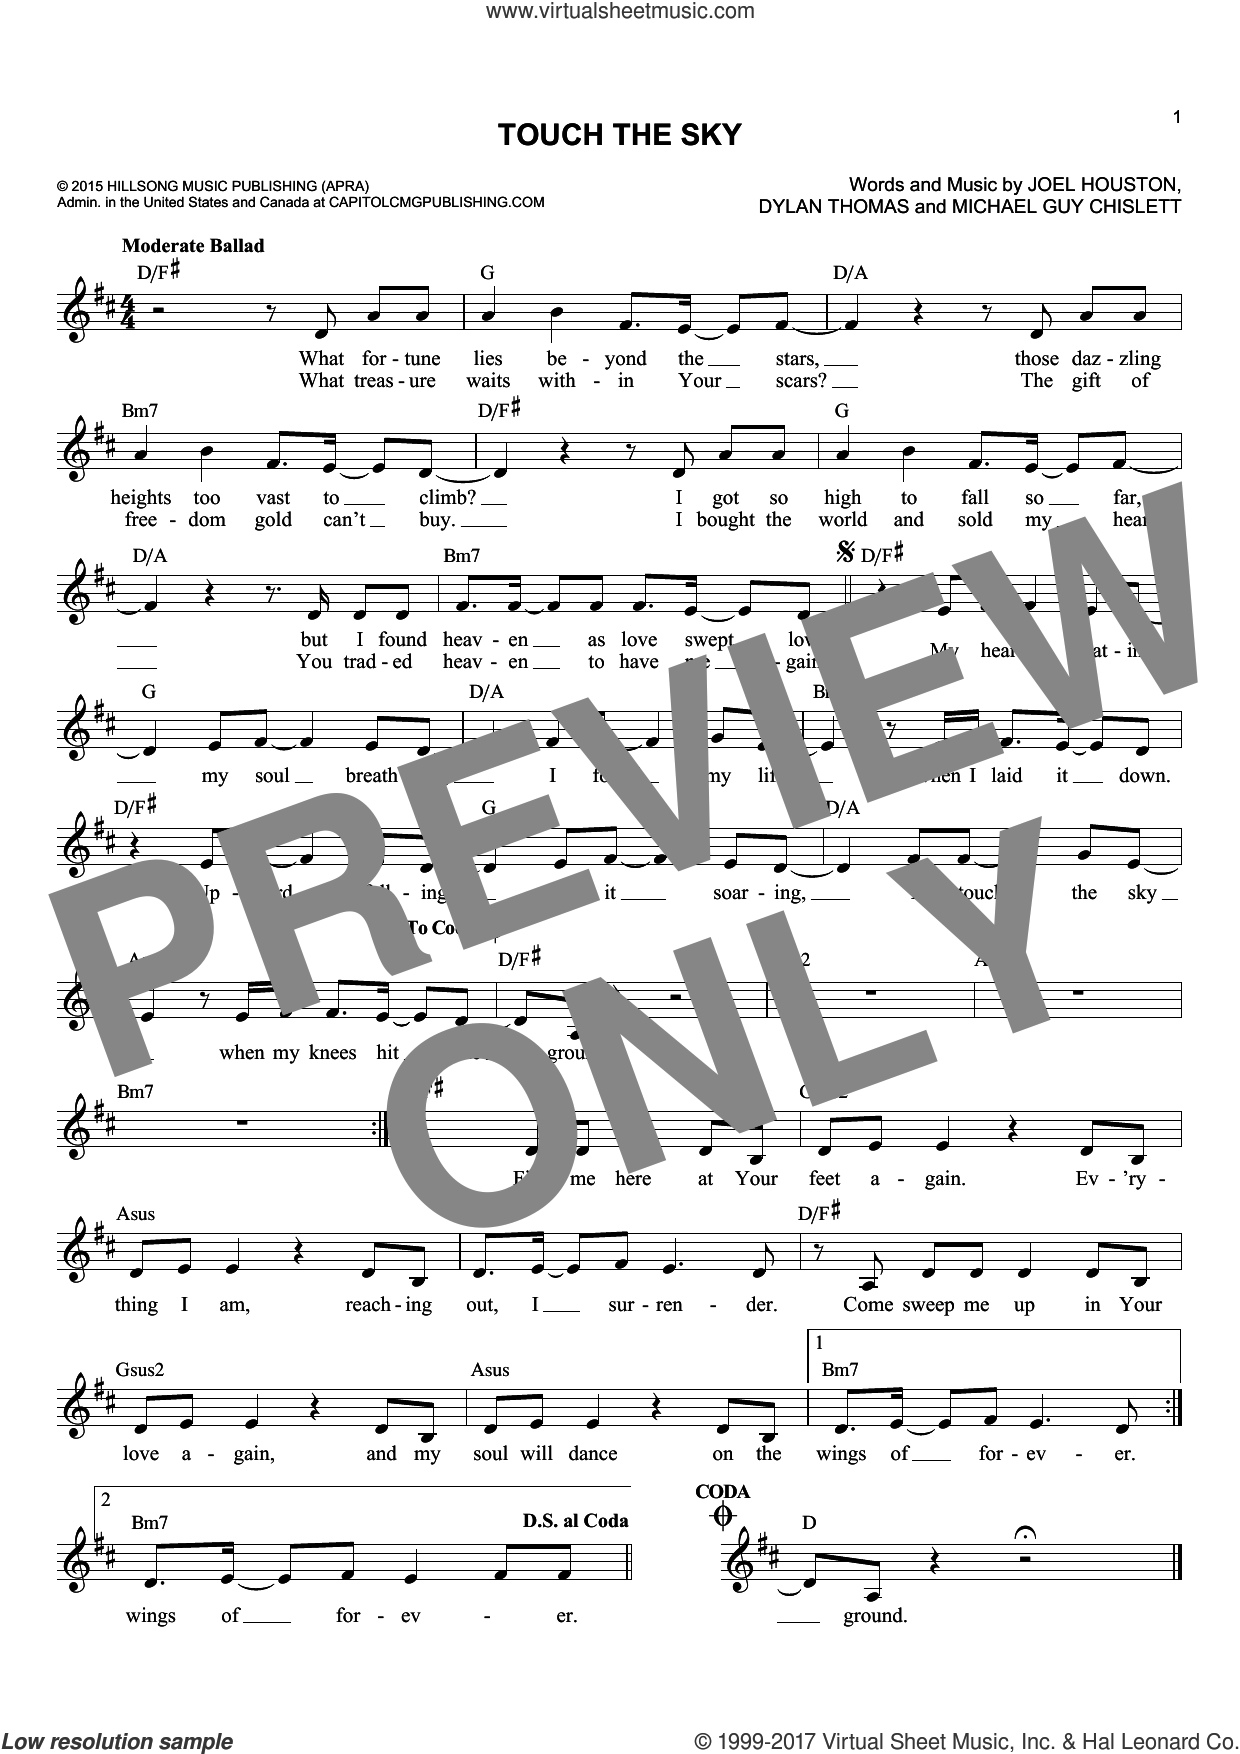 Touch The Sky sheet music for voice and other instruments (fake book) by Hillsong United, Dylan Thomas, Joel Houston and Michael Guy Chislett, intermediate